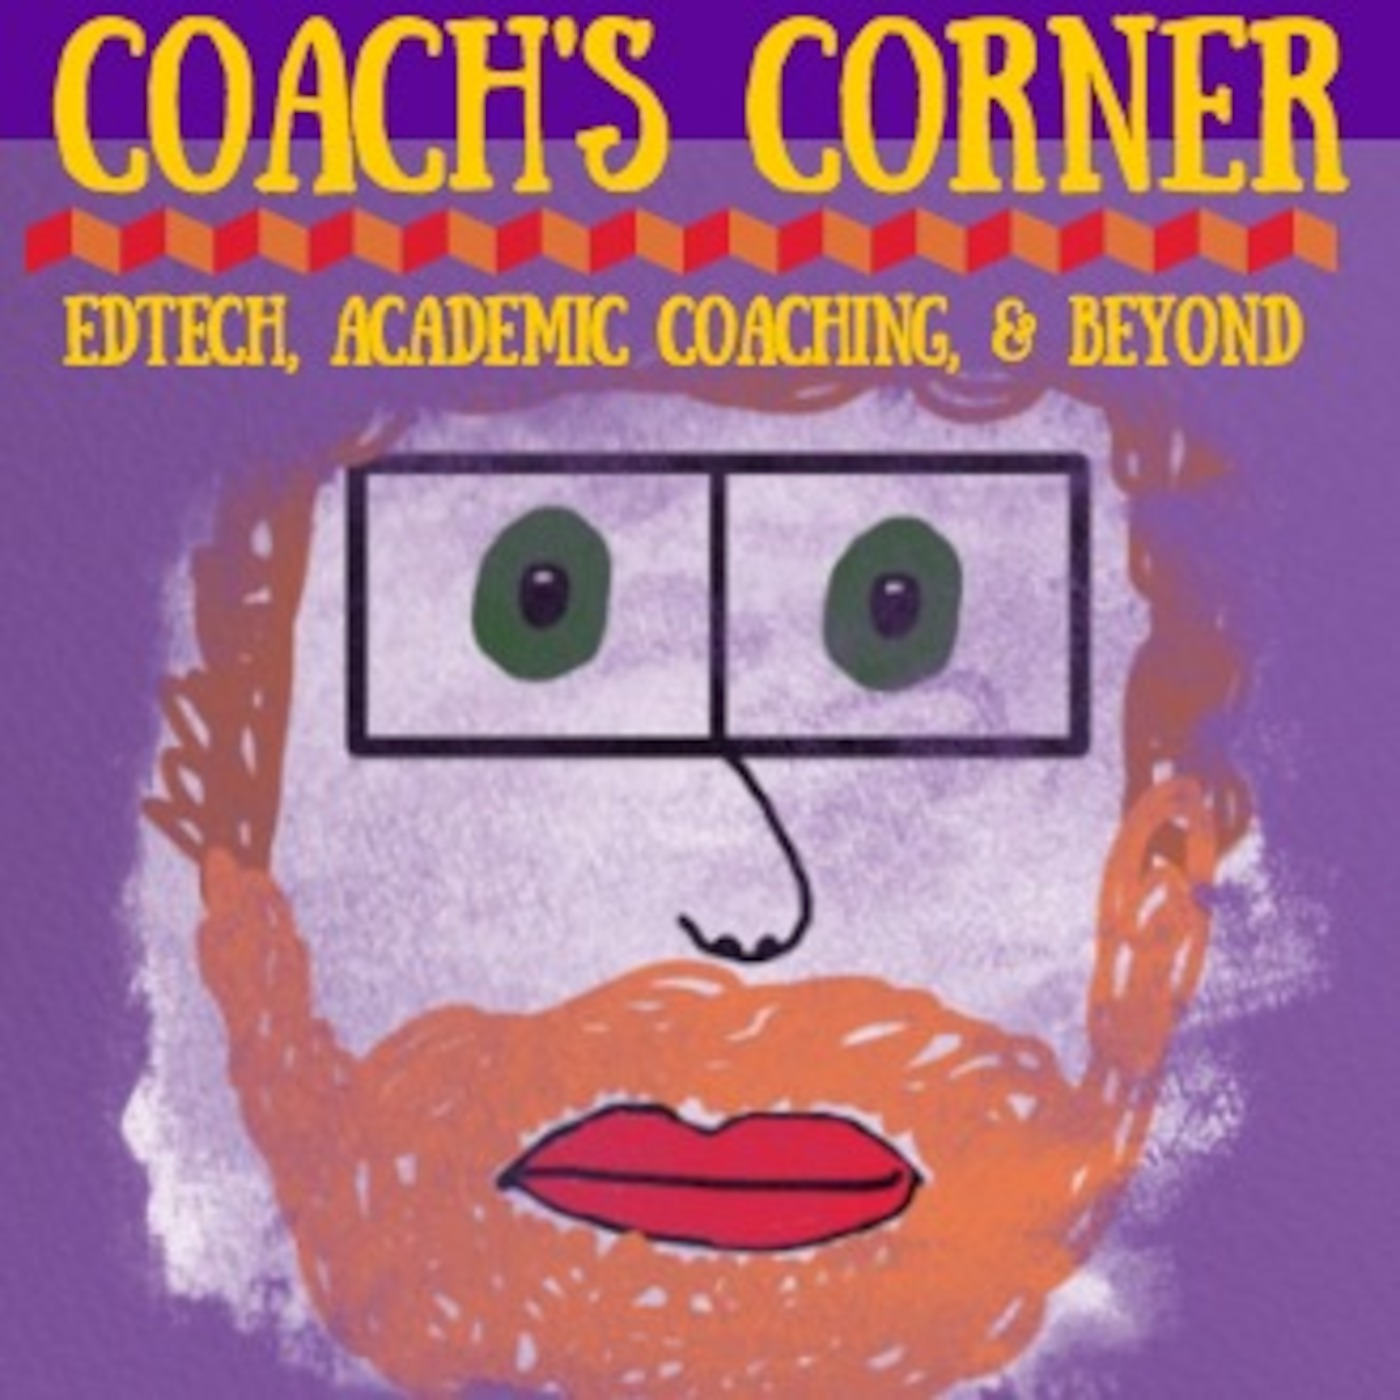 Coach's Corner: Edtech, Academic Coaching, and Beyond